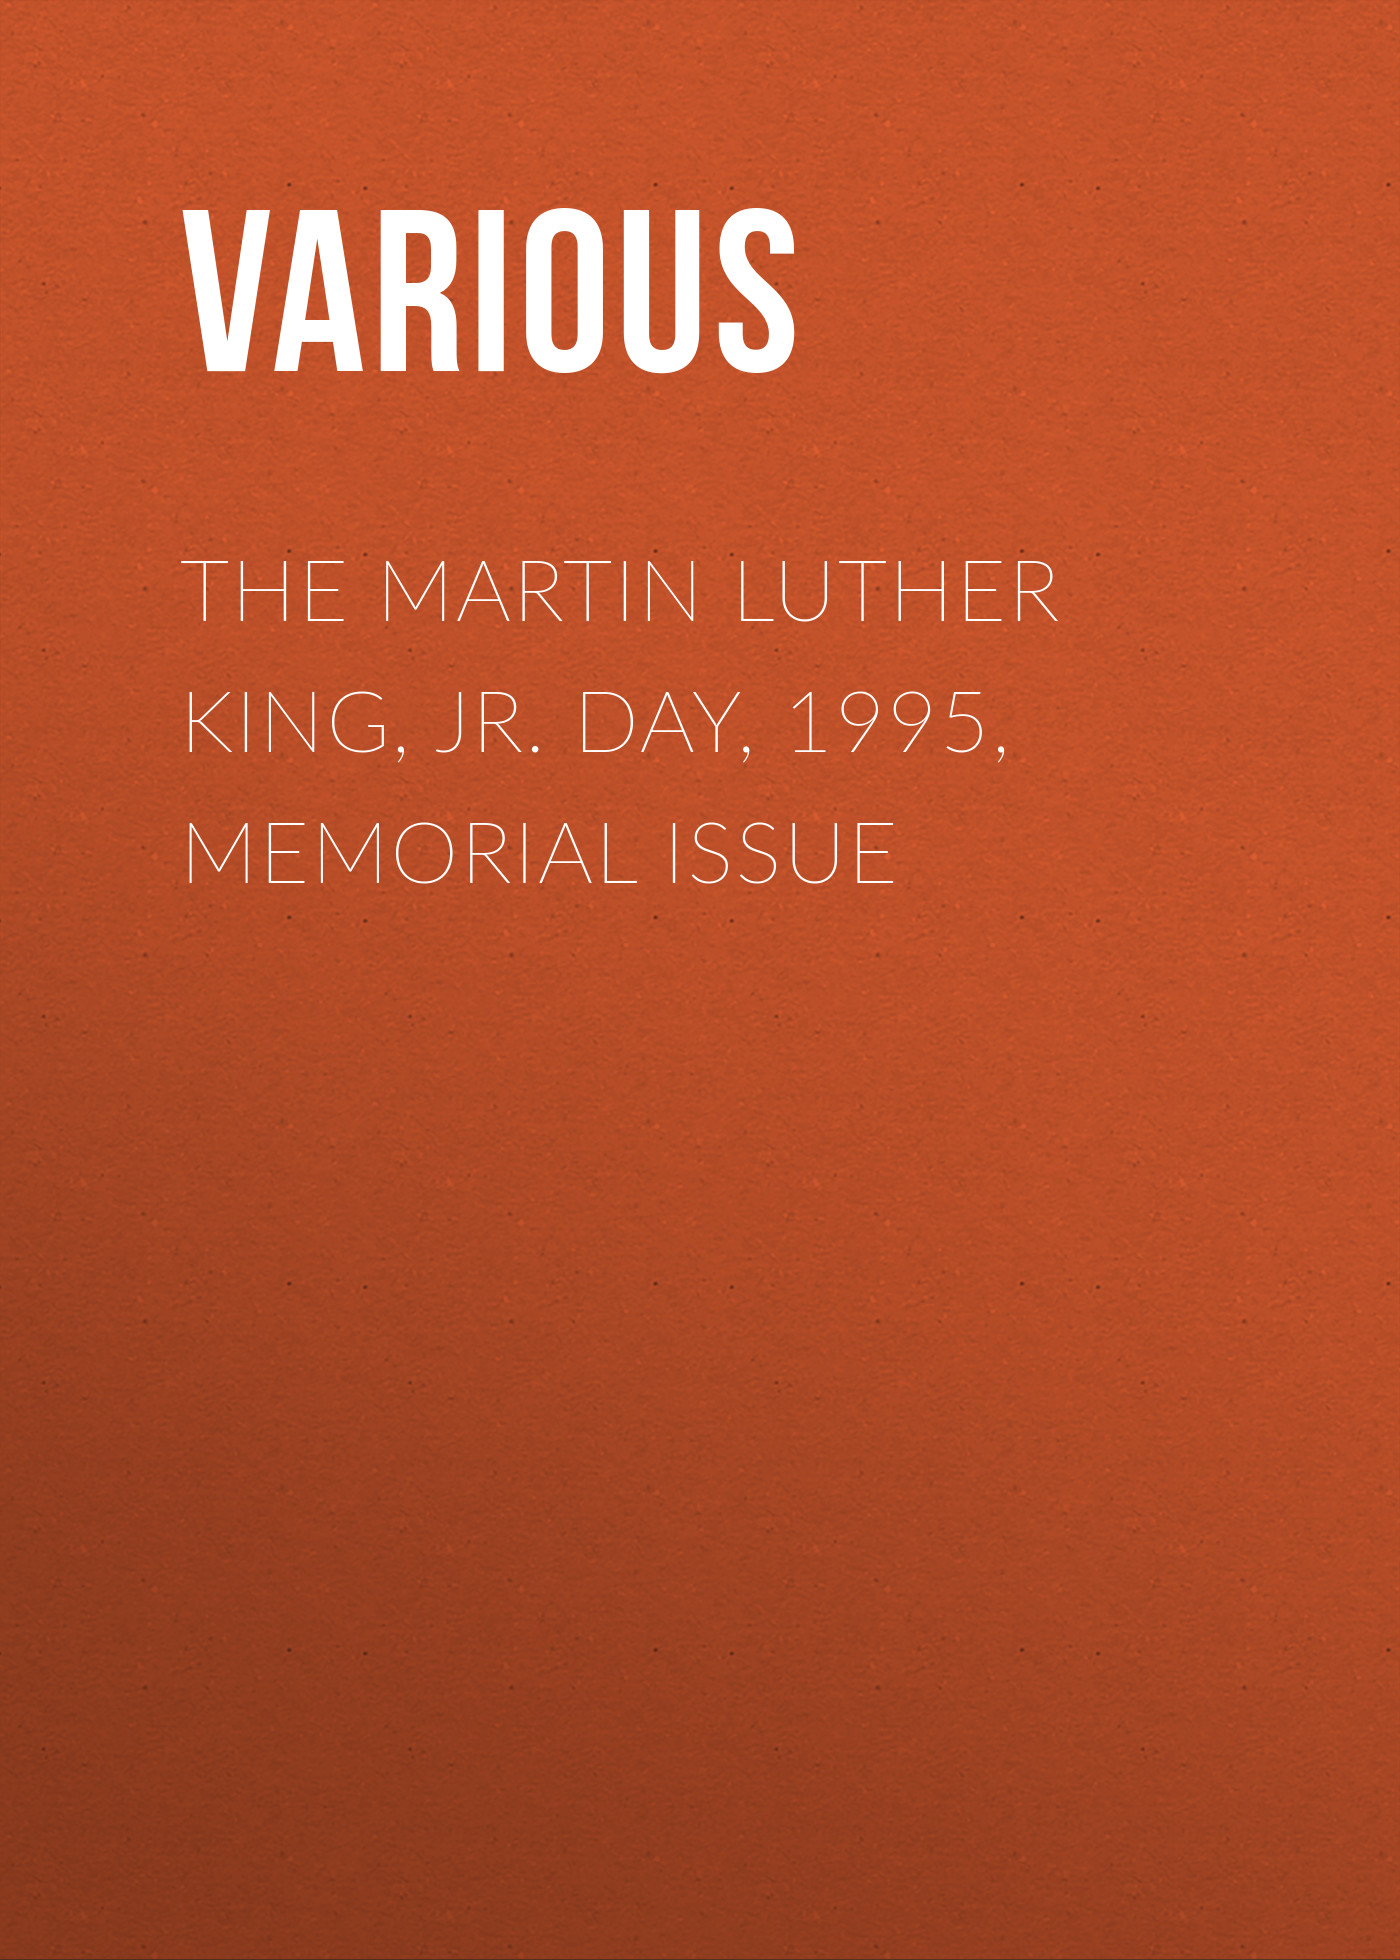 Various The Martin Luther King, Jr. Day, 1995, Memorial Issue martin luther king jr and the march on washington